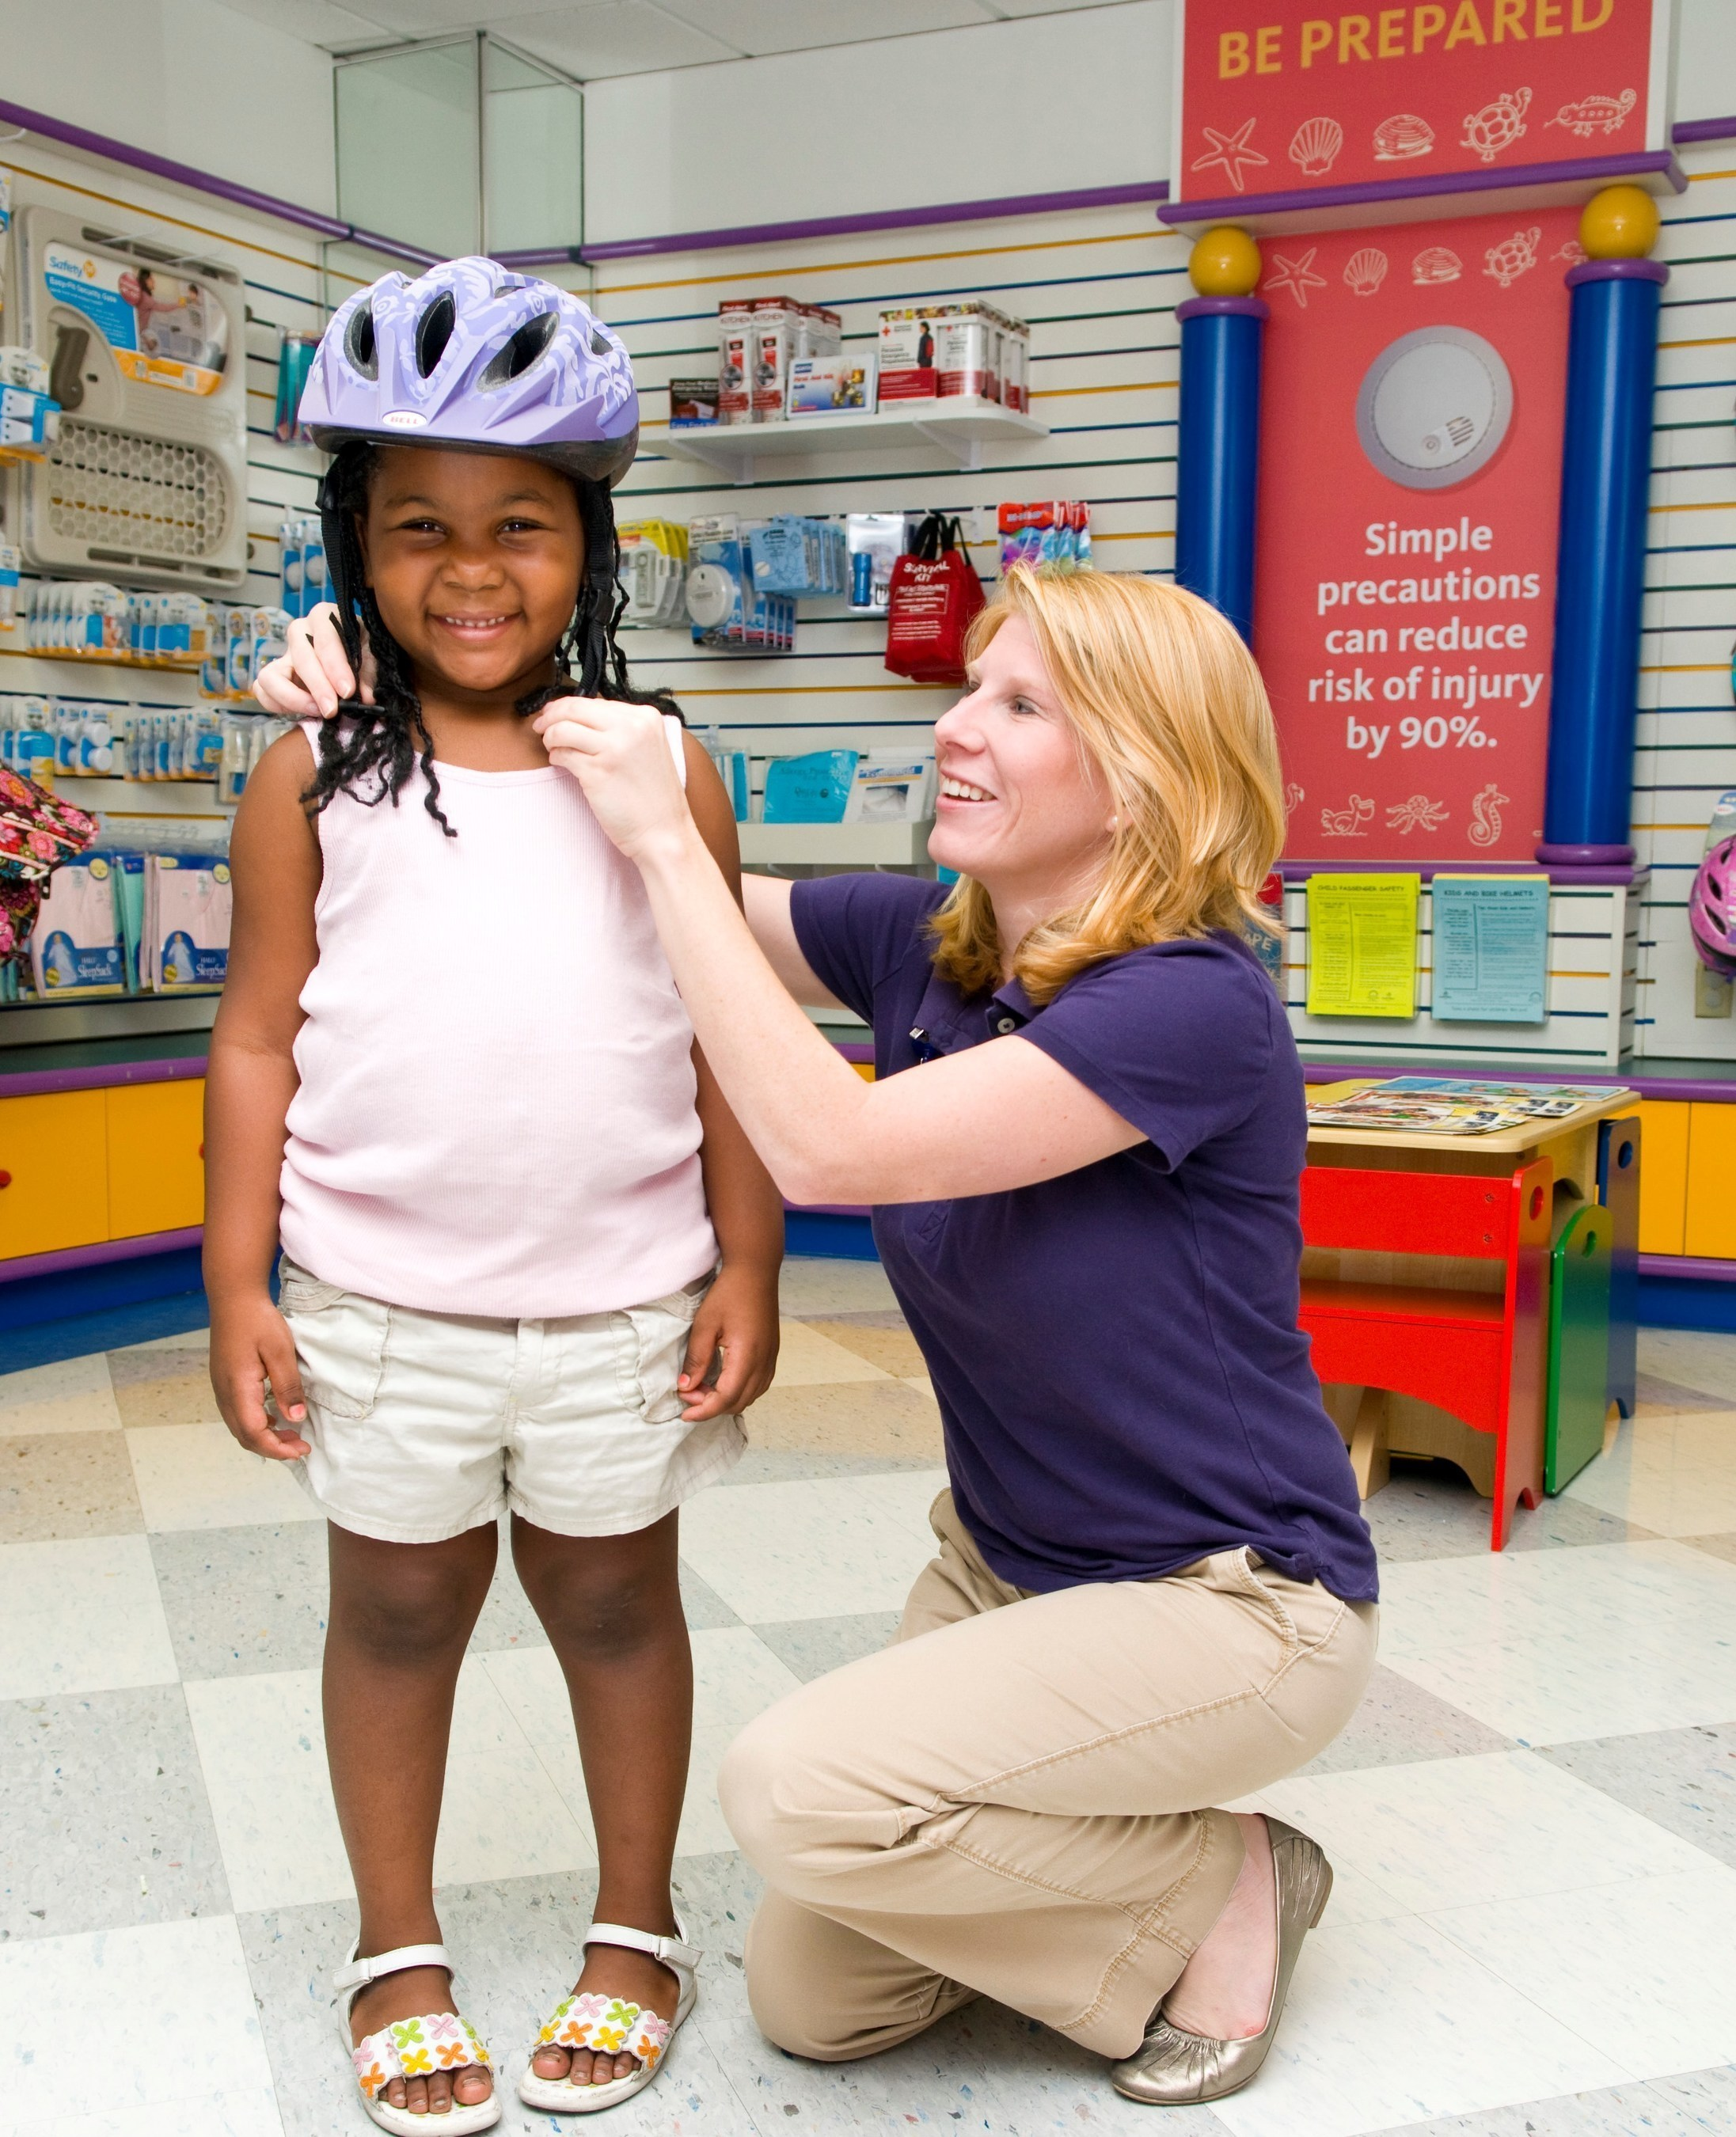 St. Joseph's Children's Hospital encourages parents and other holiday gift-givers to include a helmet ...